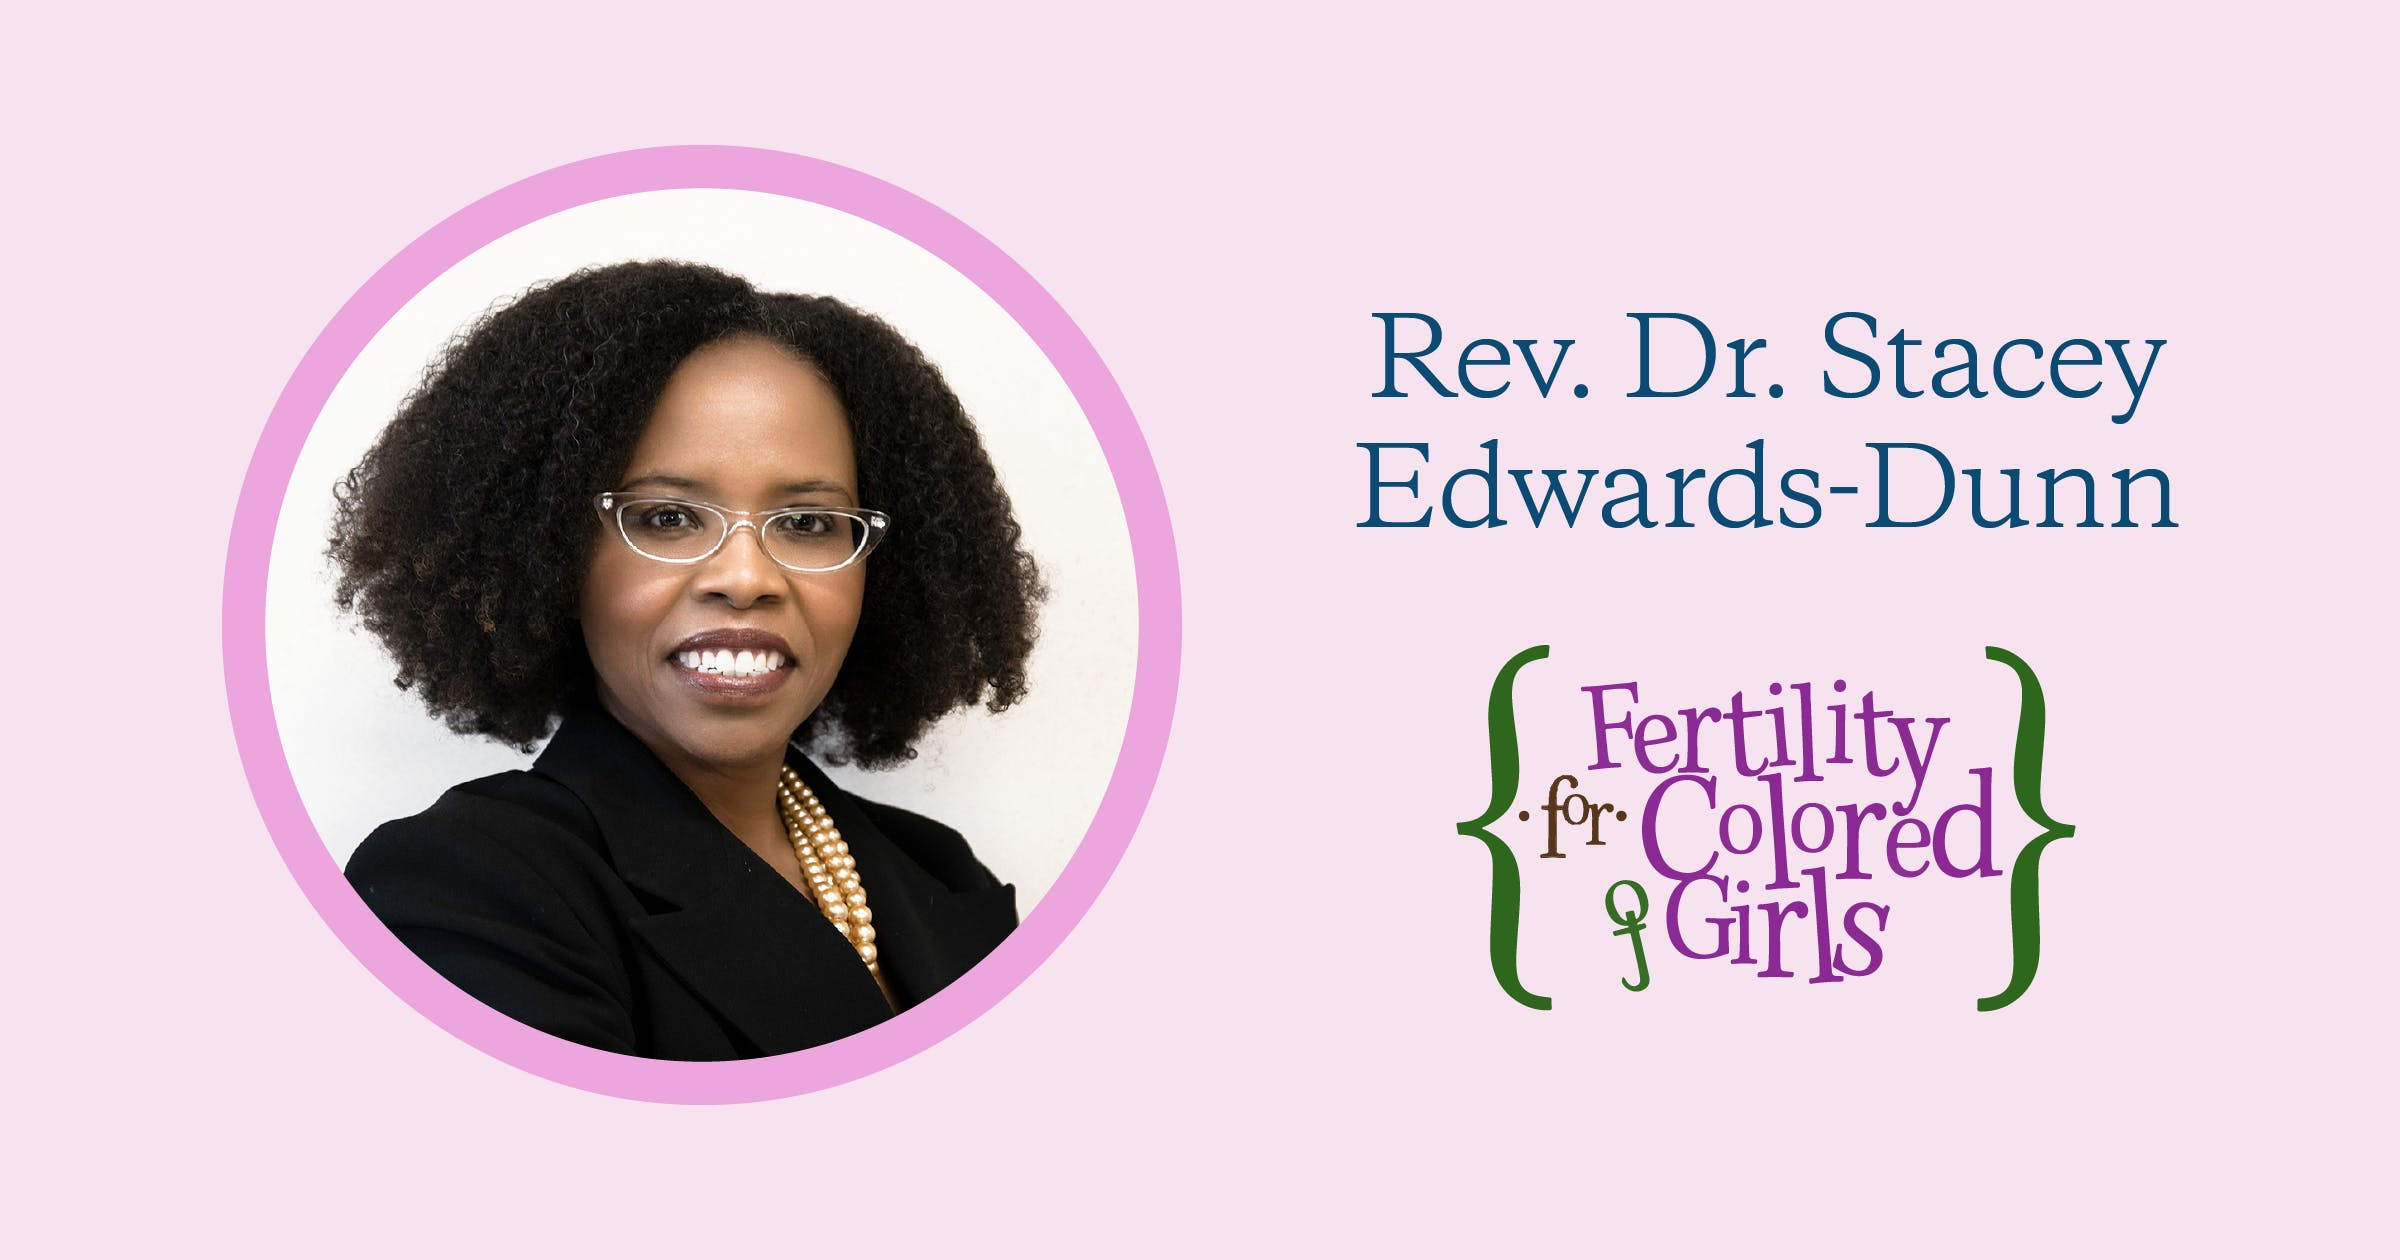 Rev. Dr. Stacey Edwards-Dunn